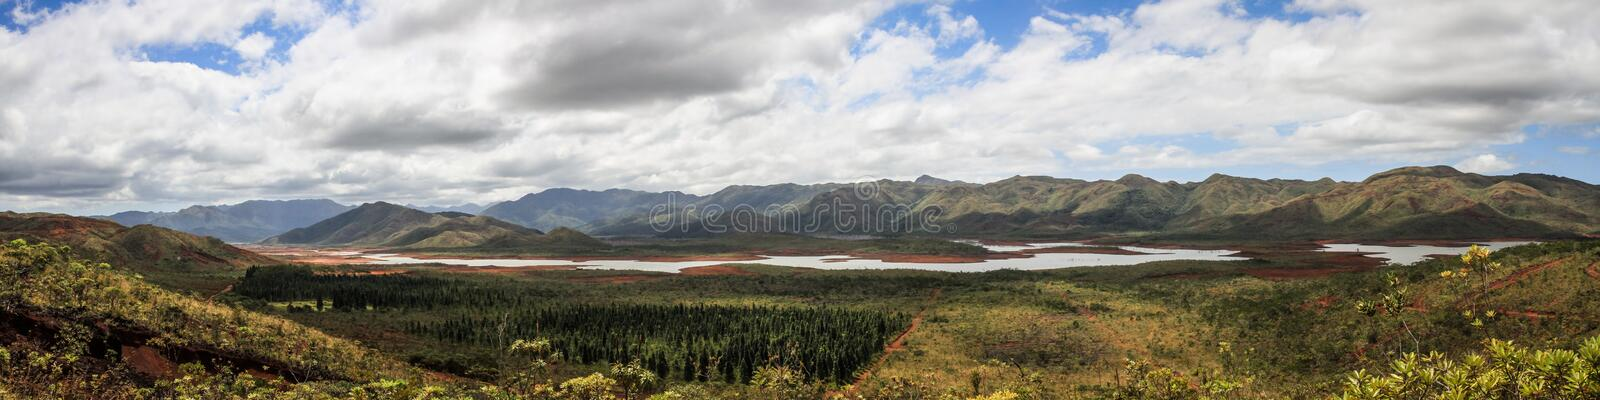 Panorama of the blue river provincial park, south of Grande Terre, New Caledonia. Grande Terre is the largest and principal island of New Caledonia. British royalty free stock images